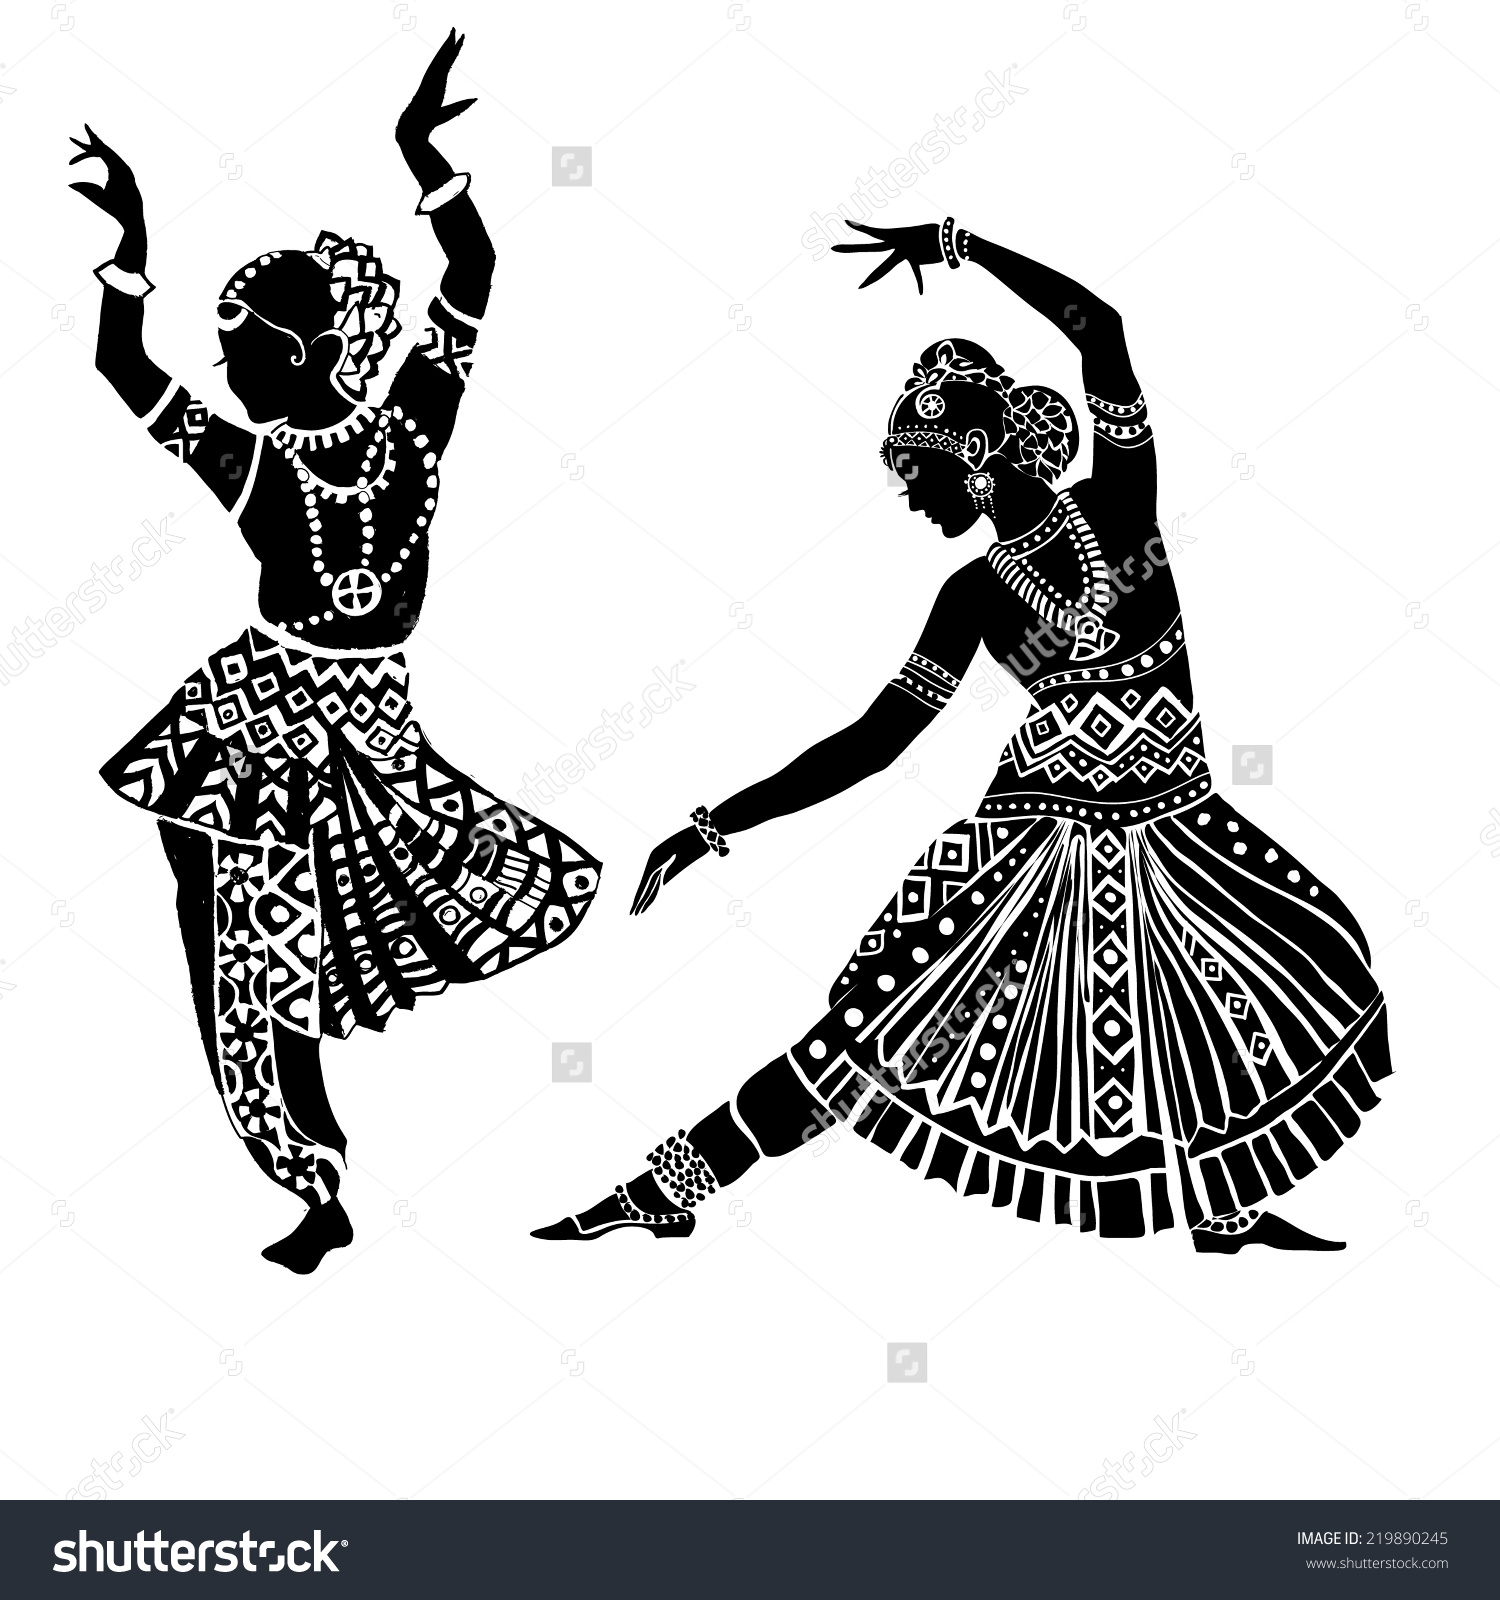 Indian music and dance clipart.